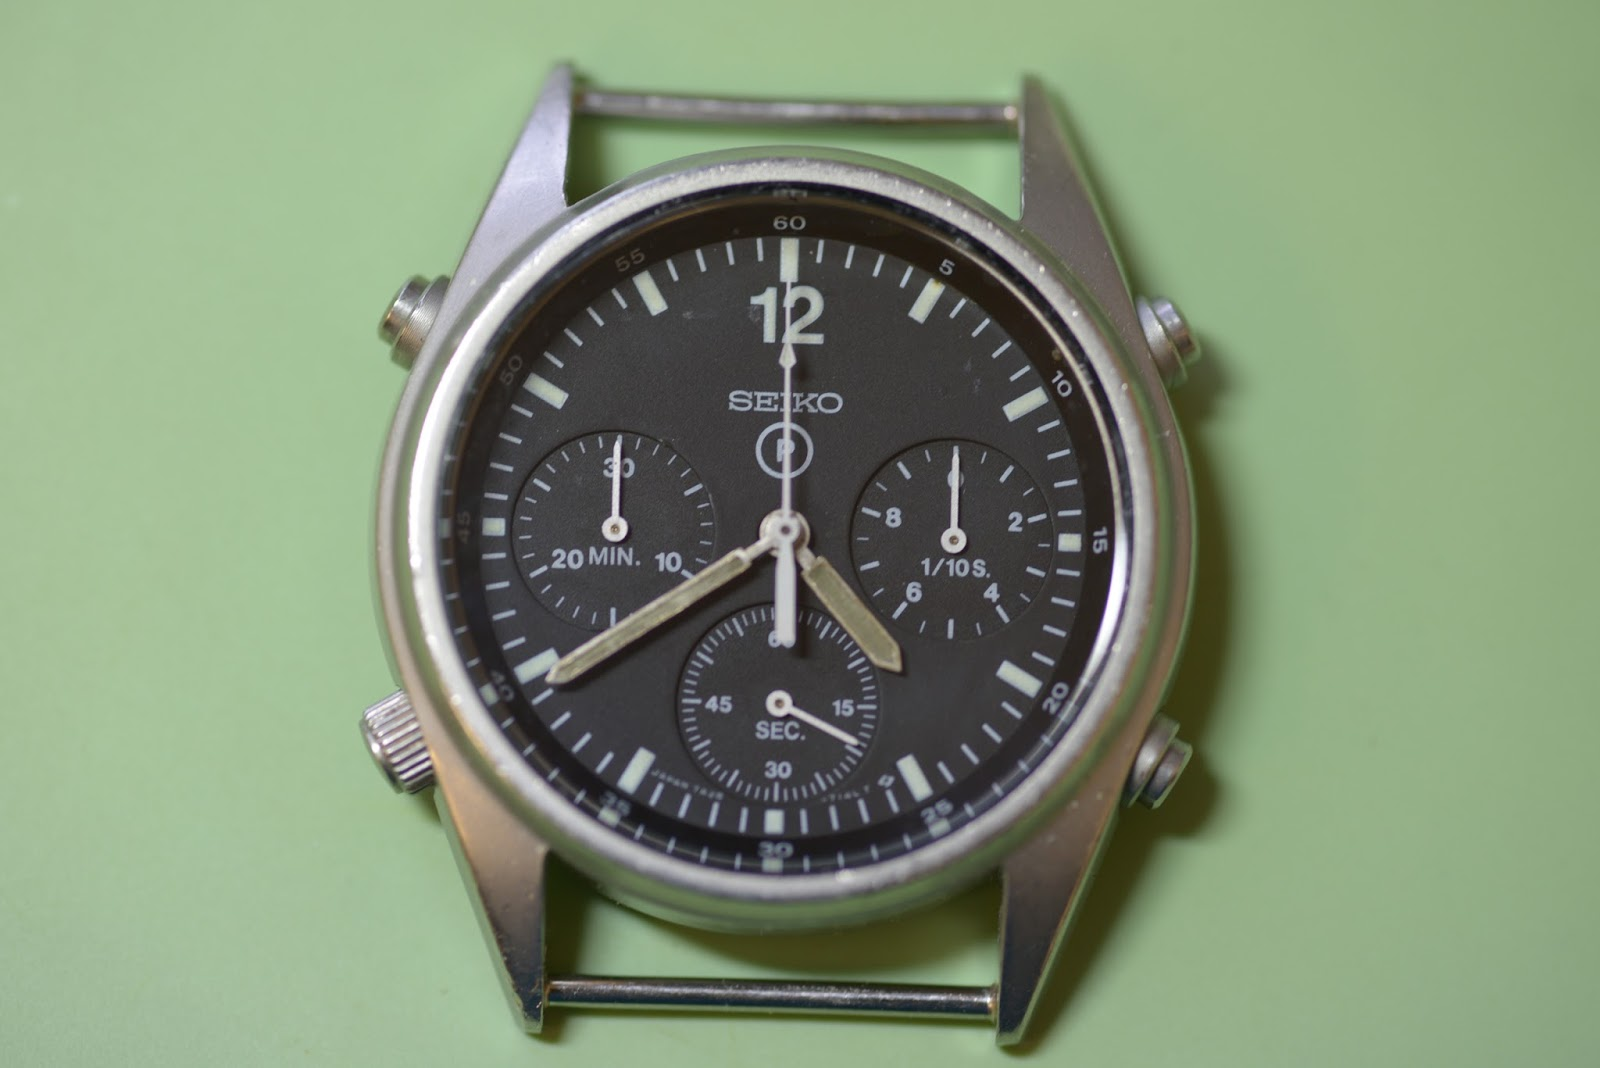 53515f78e65 The Seiko Gen 1 chronograph was issued from 1984 until 1990 and replaced  the mechanical chronographs that were issued to pilots from the 1940s  (initially ...